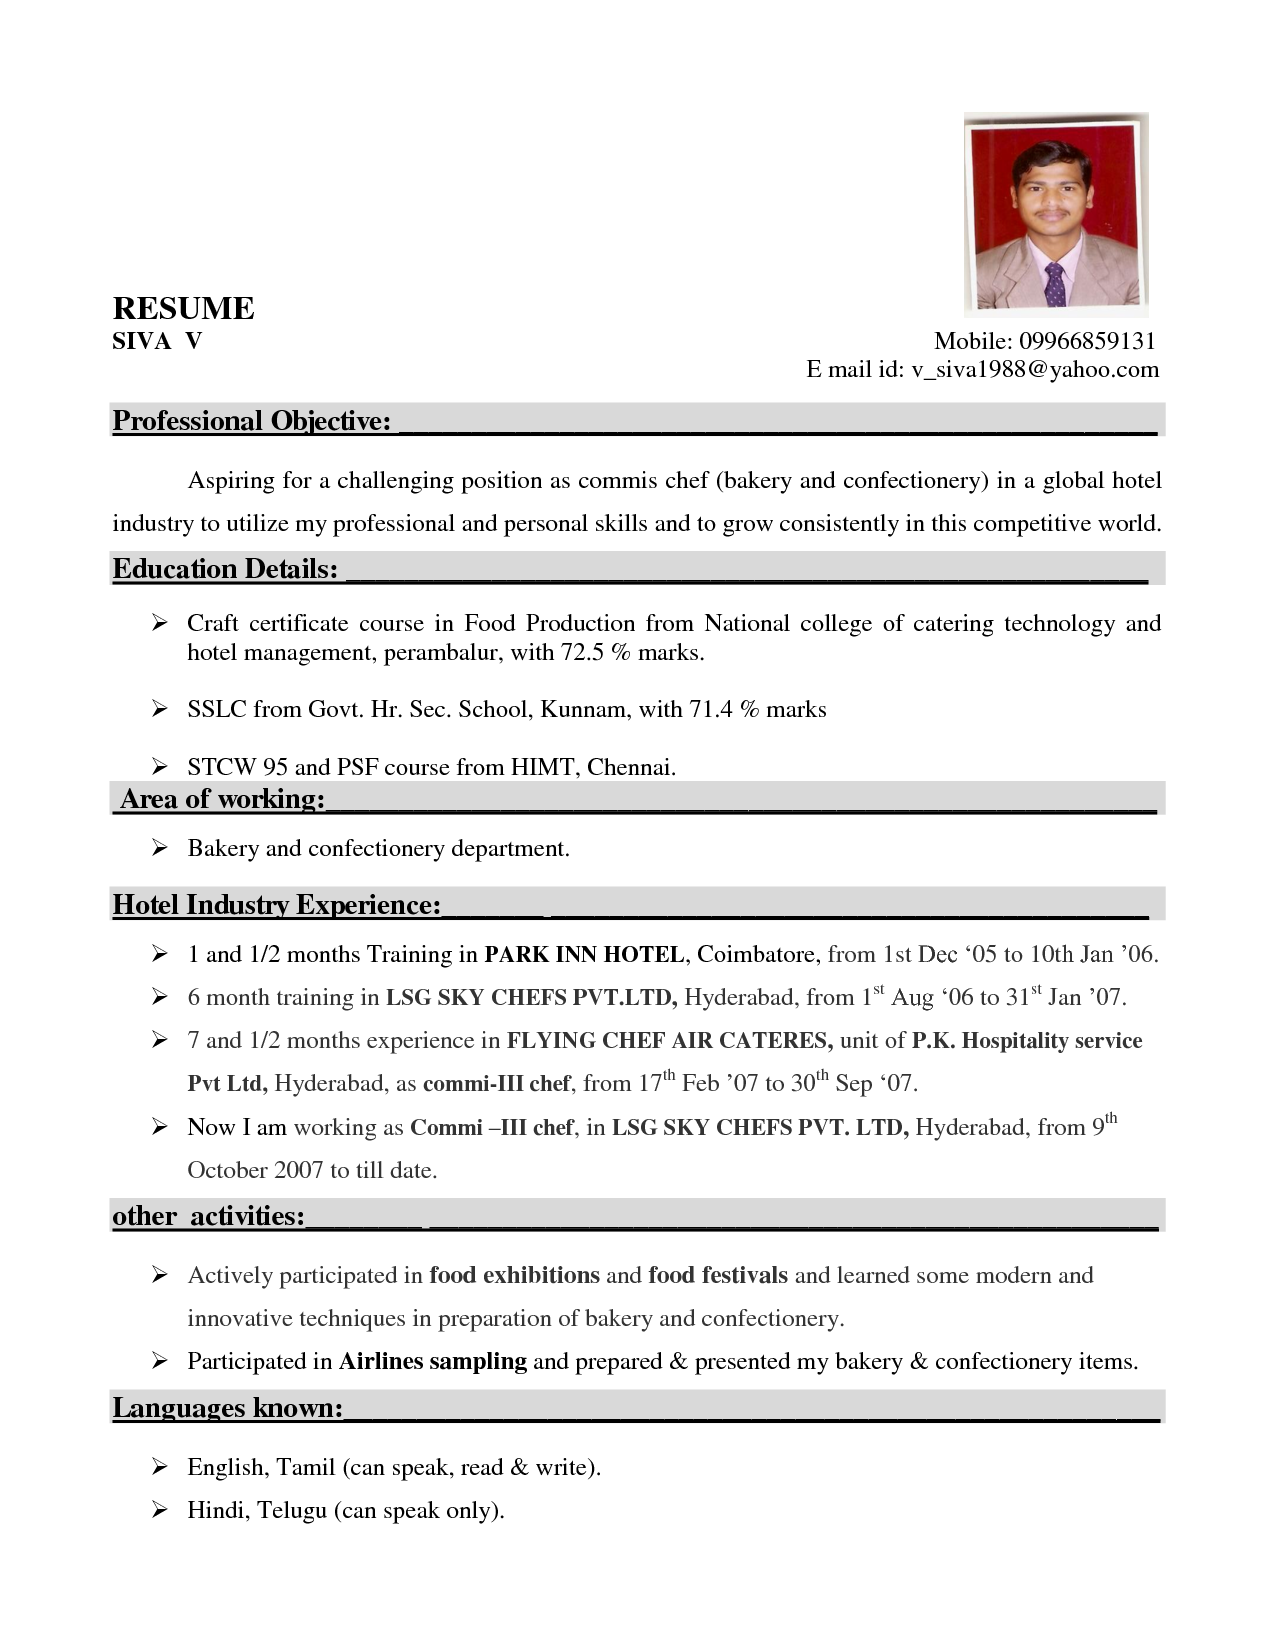 Resume Sample For Hotel Chef Yahoo Image Search